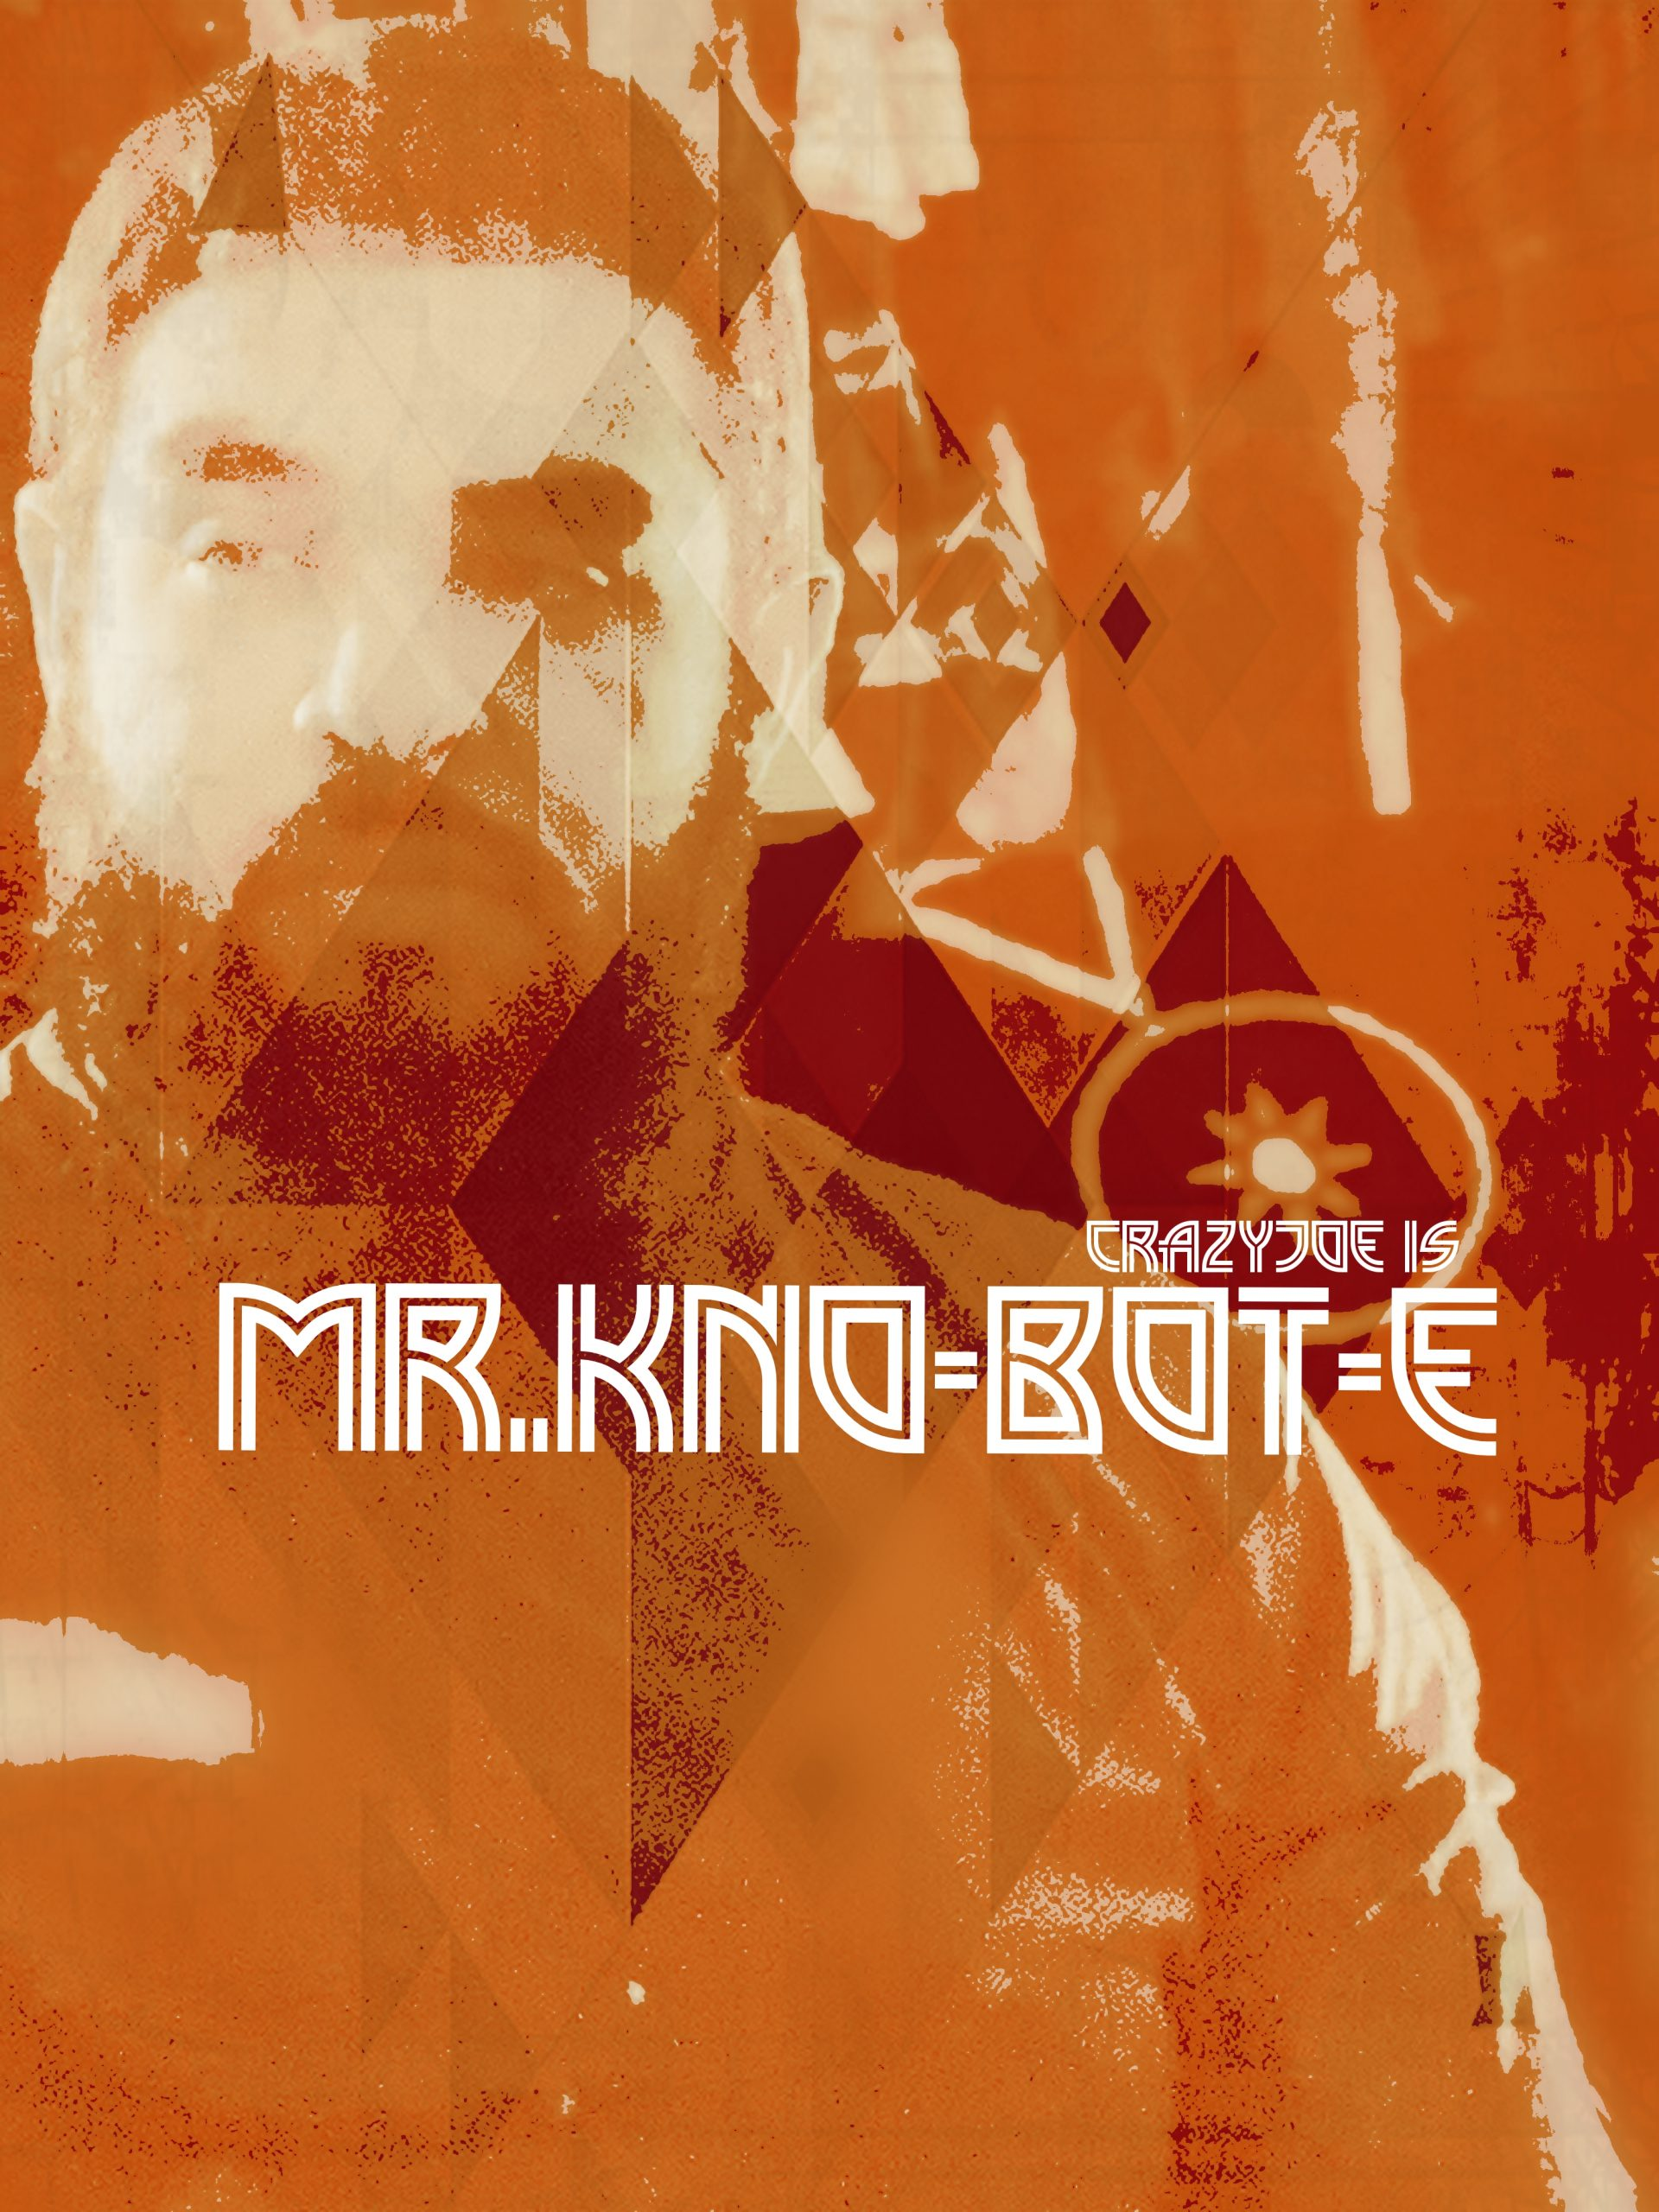 Crazy Joe – Mr. Knobote